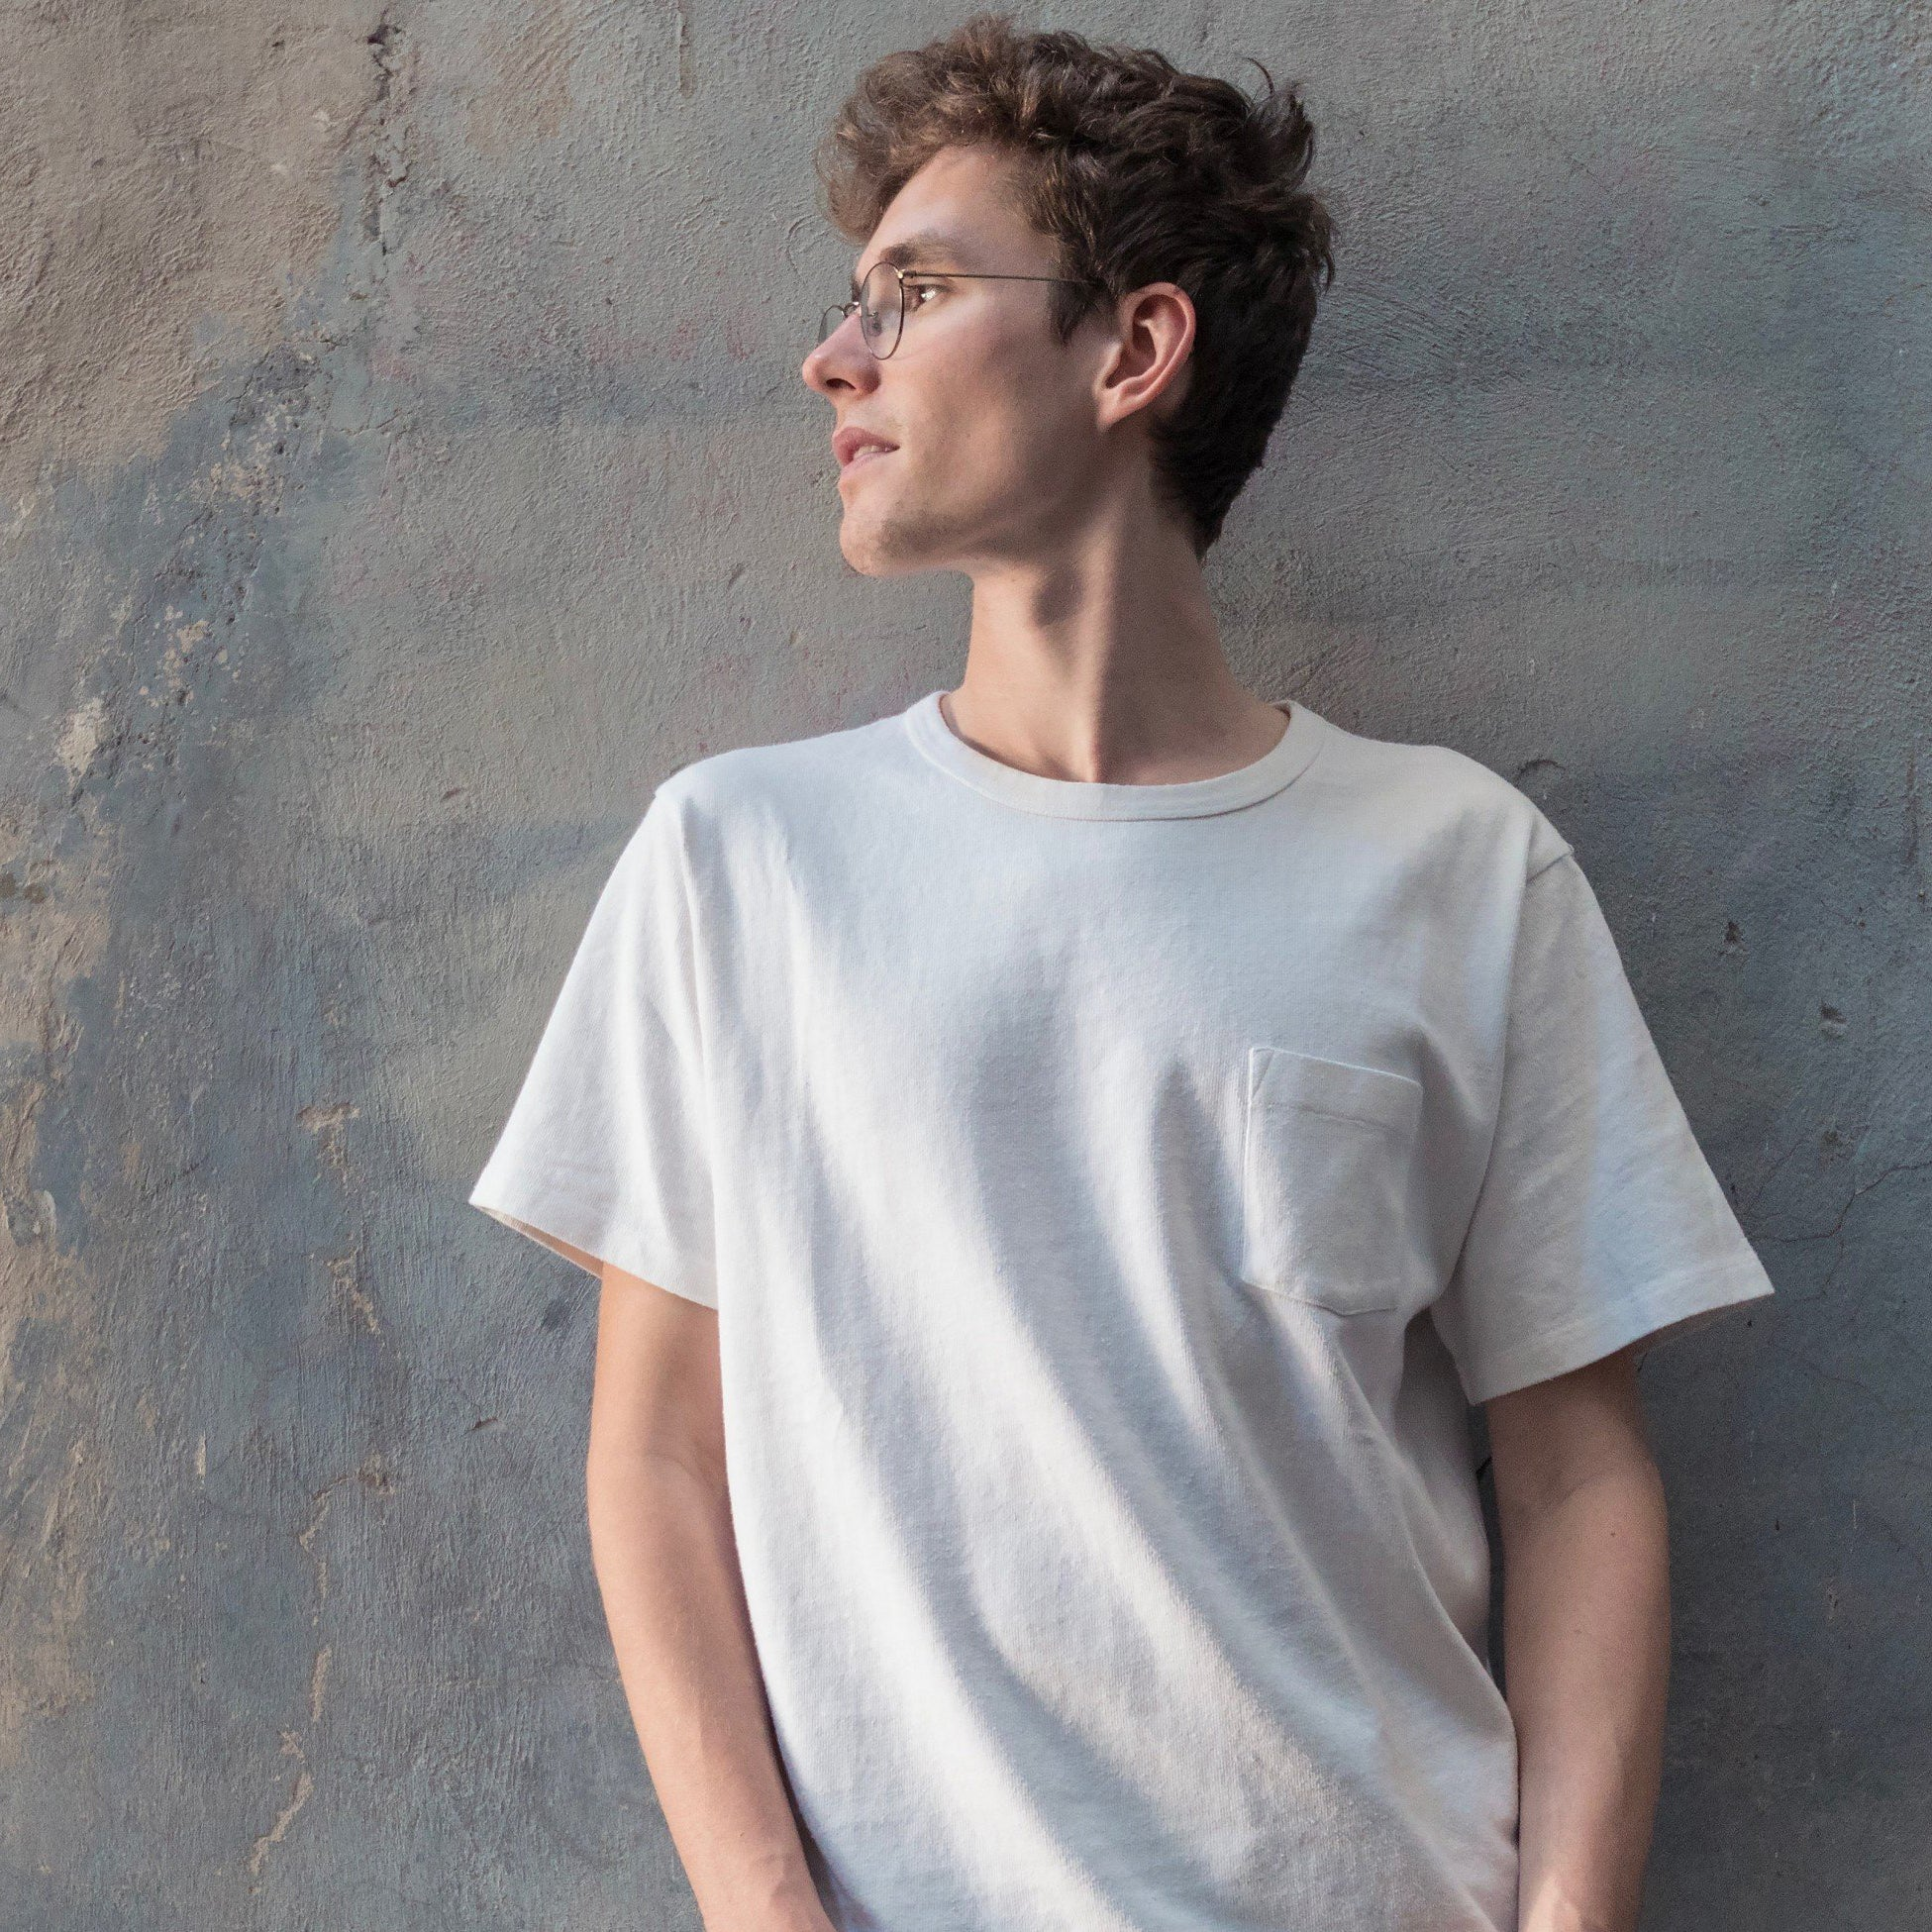 Lost Frequencies Tells You How To Catch His Attention In An Exclusive Interview